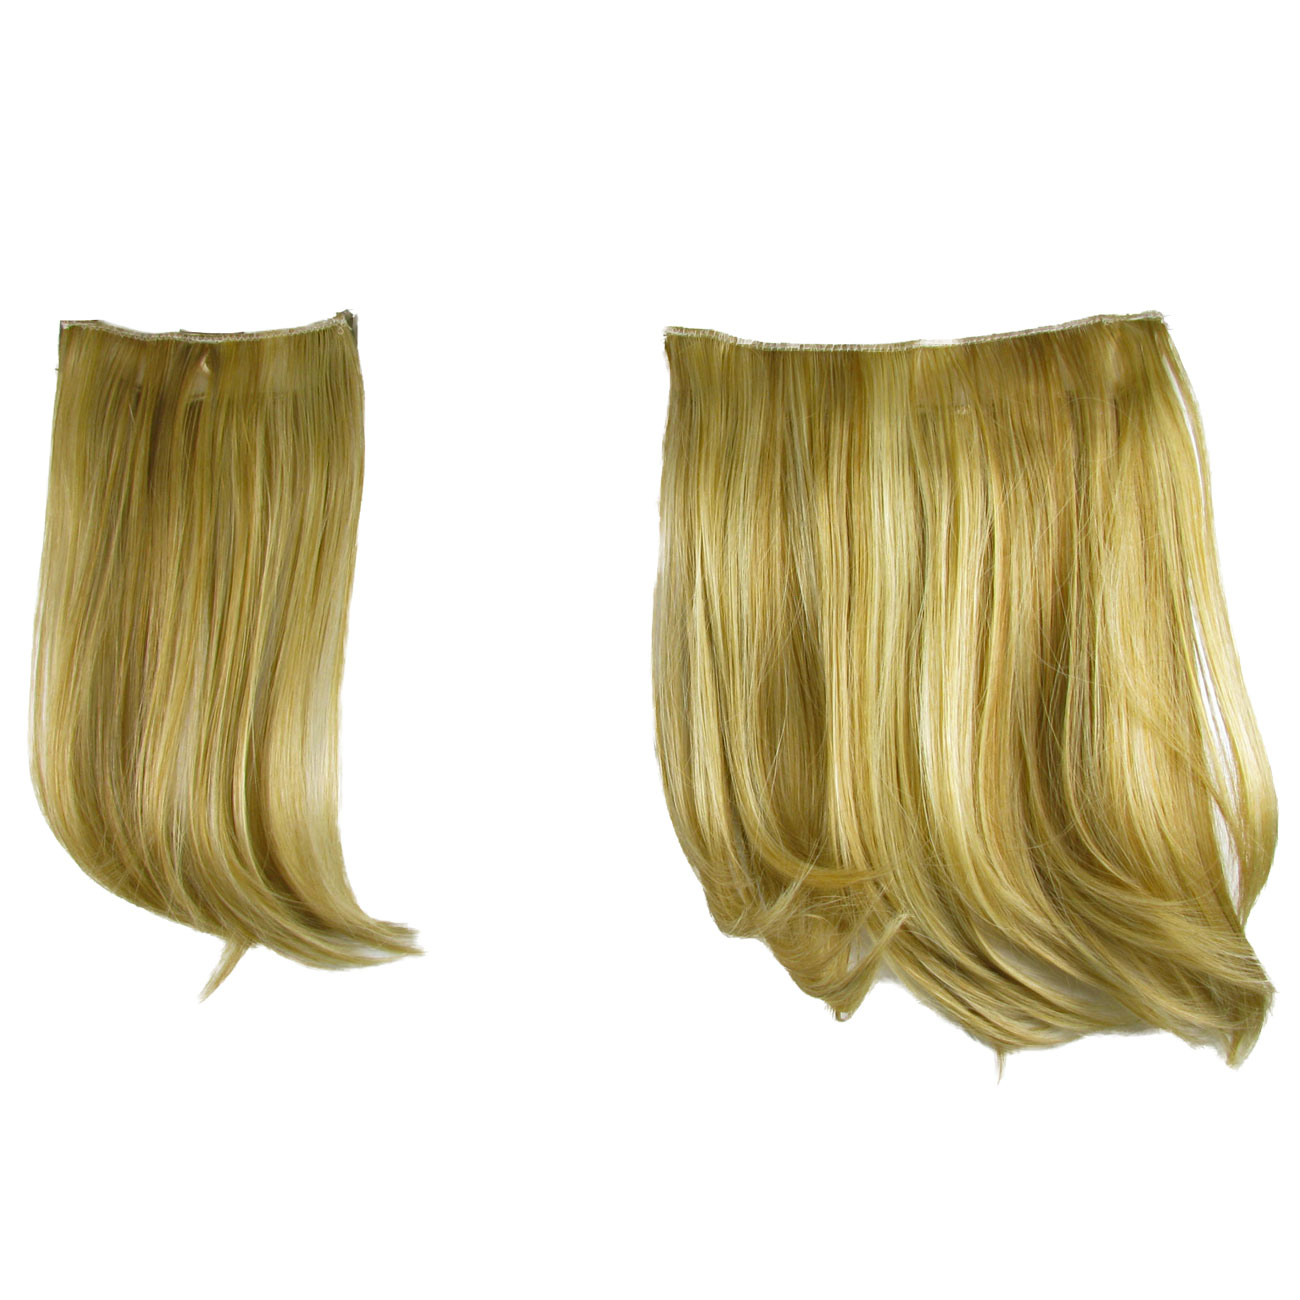 Hair Extensions Clip In 2 Piece Ken Paves Hairdo Ginger Blonde